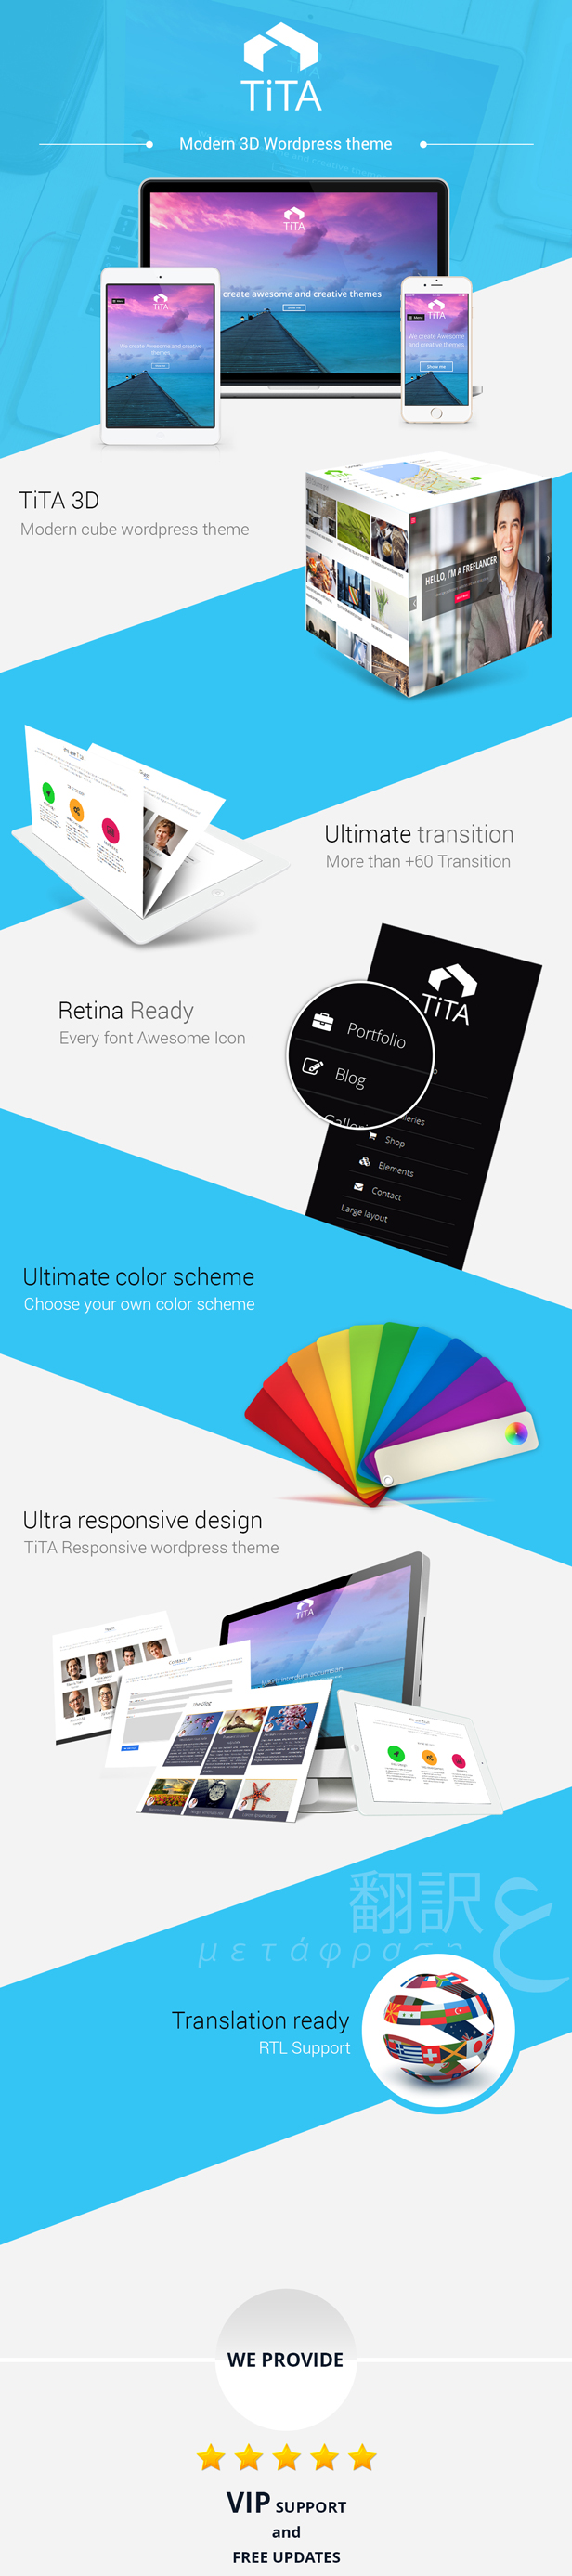 Tita 3D - Modern WordPress Theme - 2